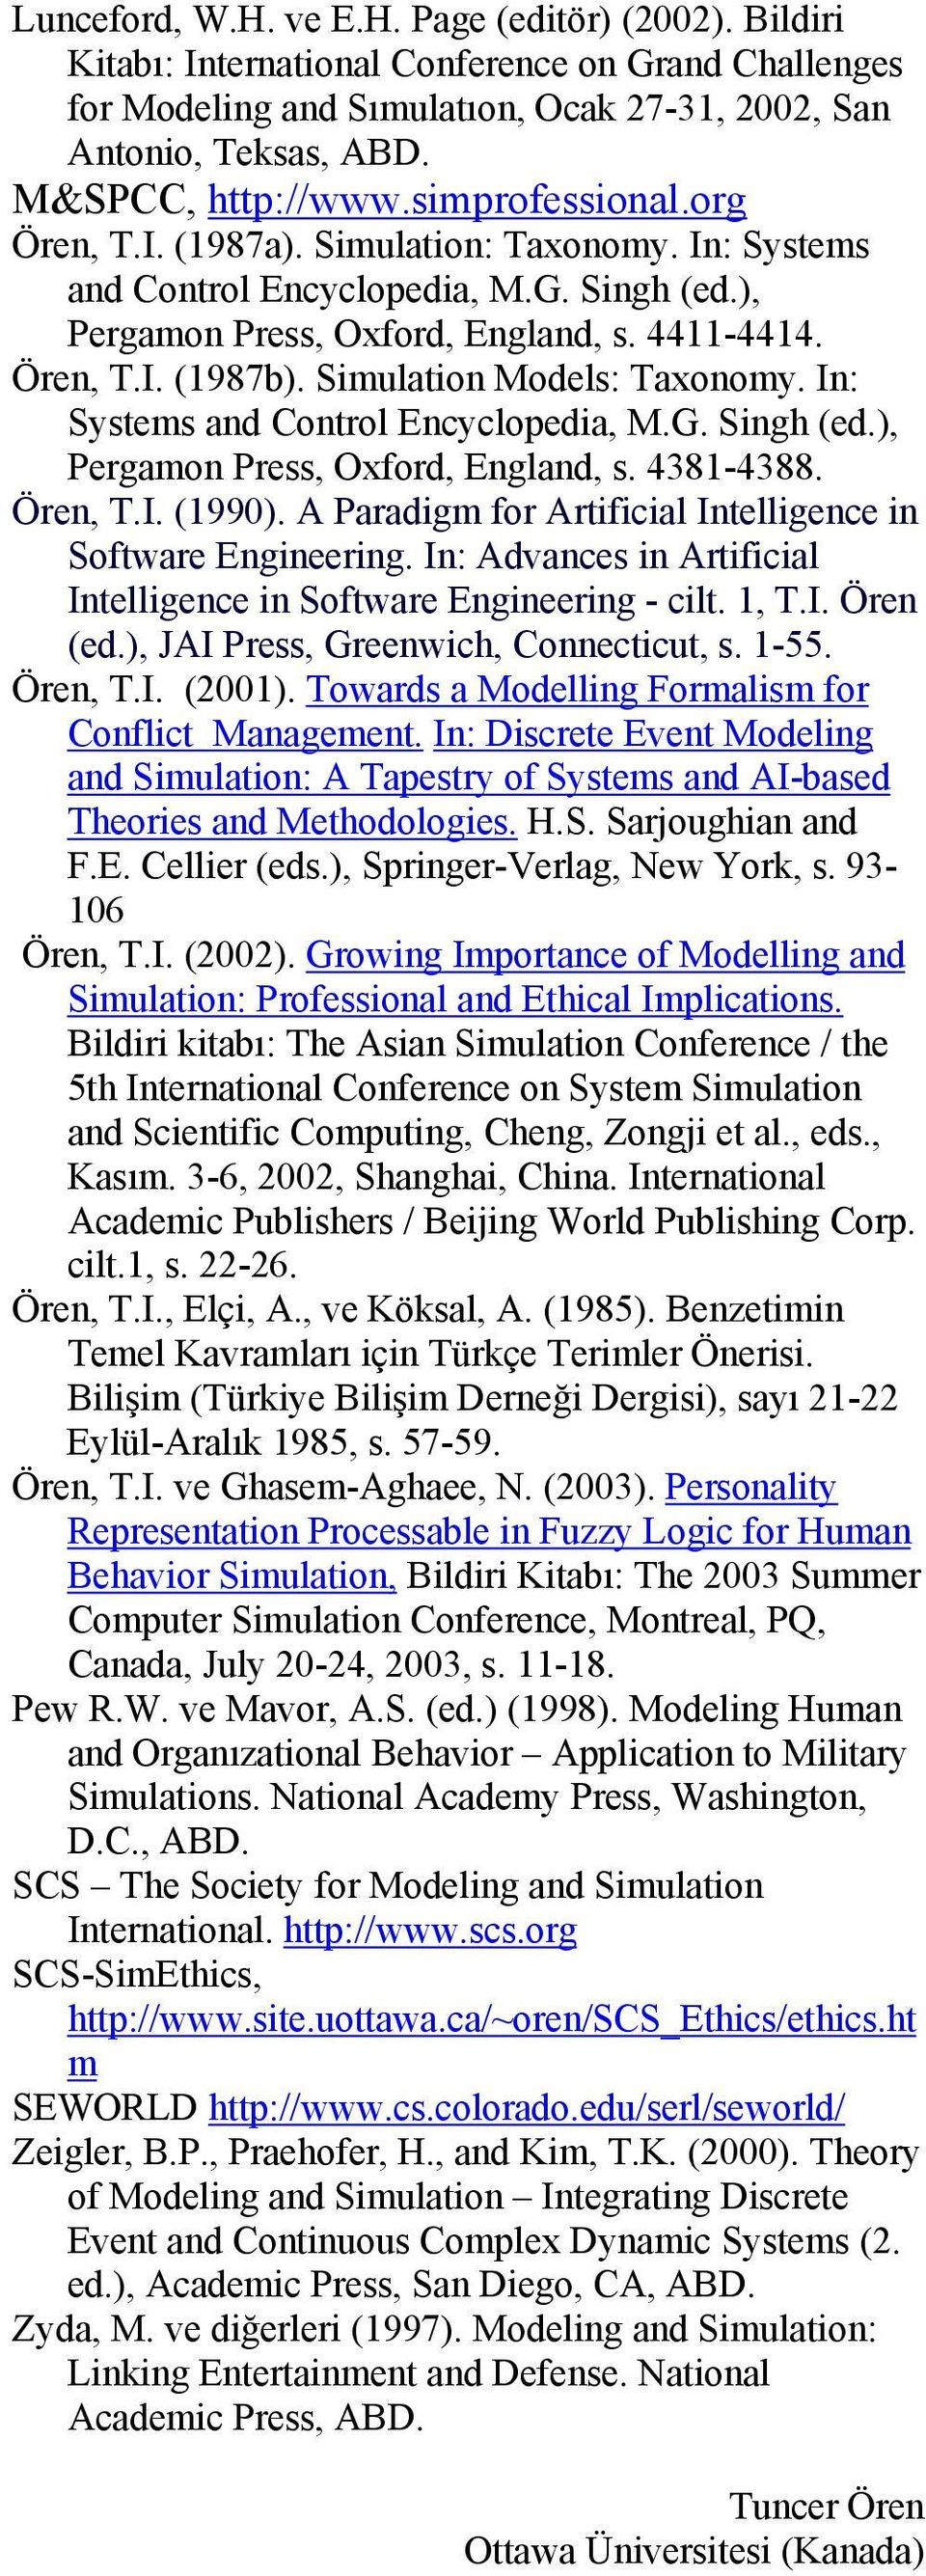 Simulation Models: Taxonomy. In: Systems and Control Encyclopedia, M.G. Singh (ed.), Pergamon Press, Oxford, England, s. 4381-4388. Ören, T.I. (1990).